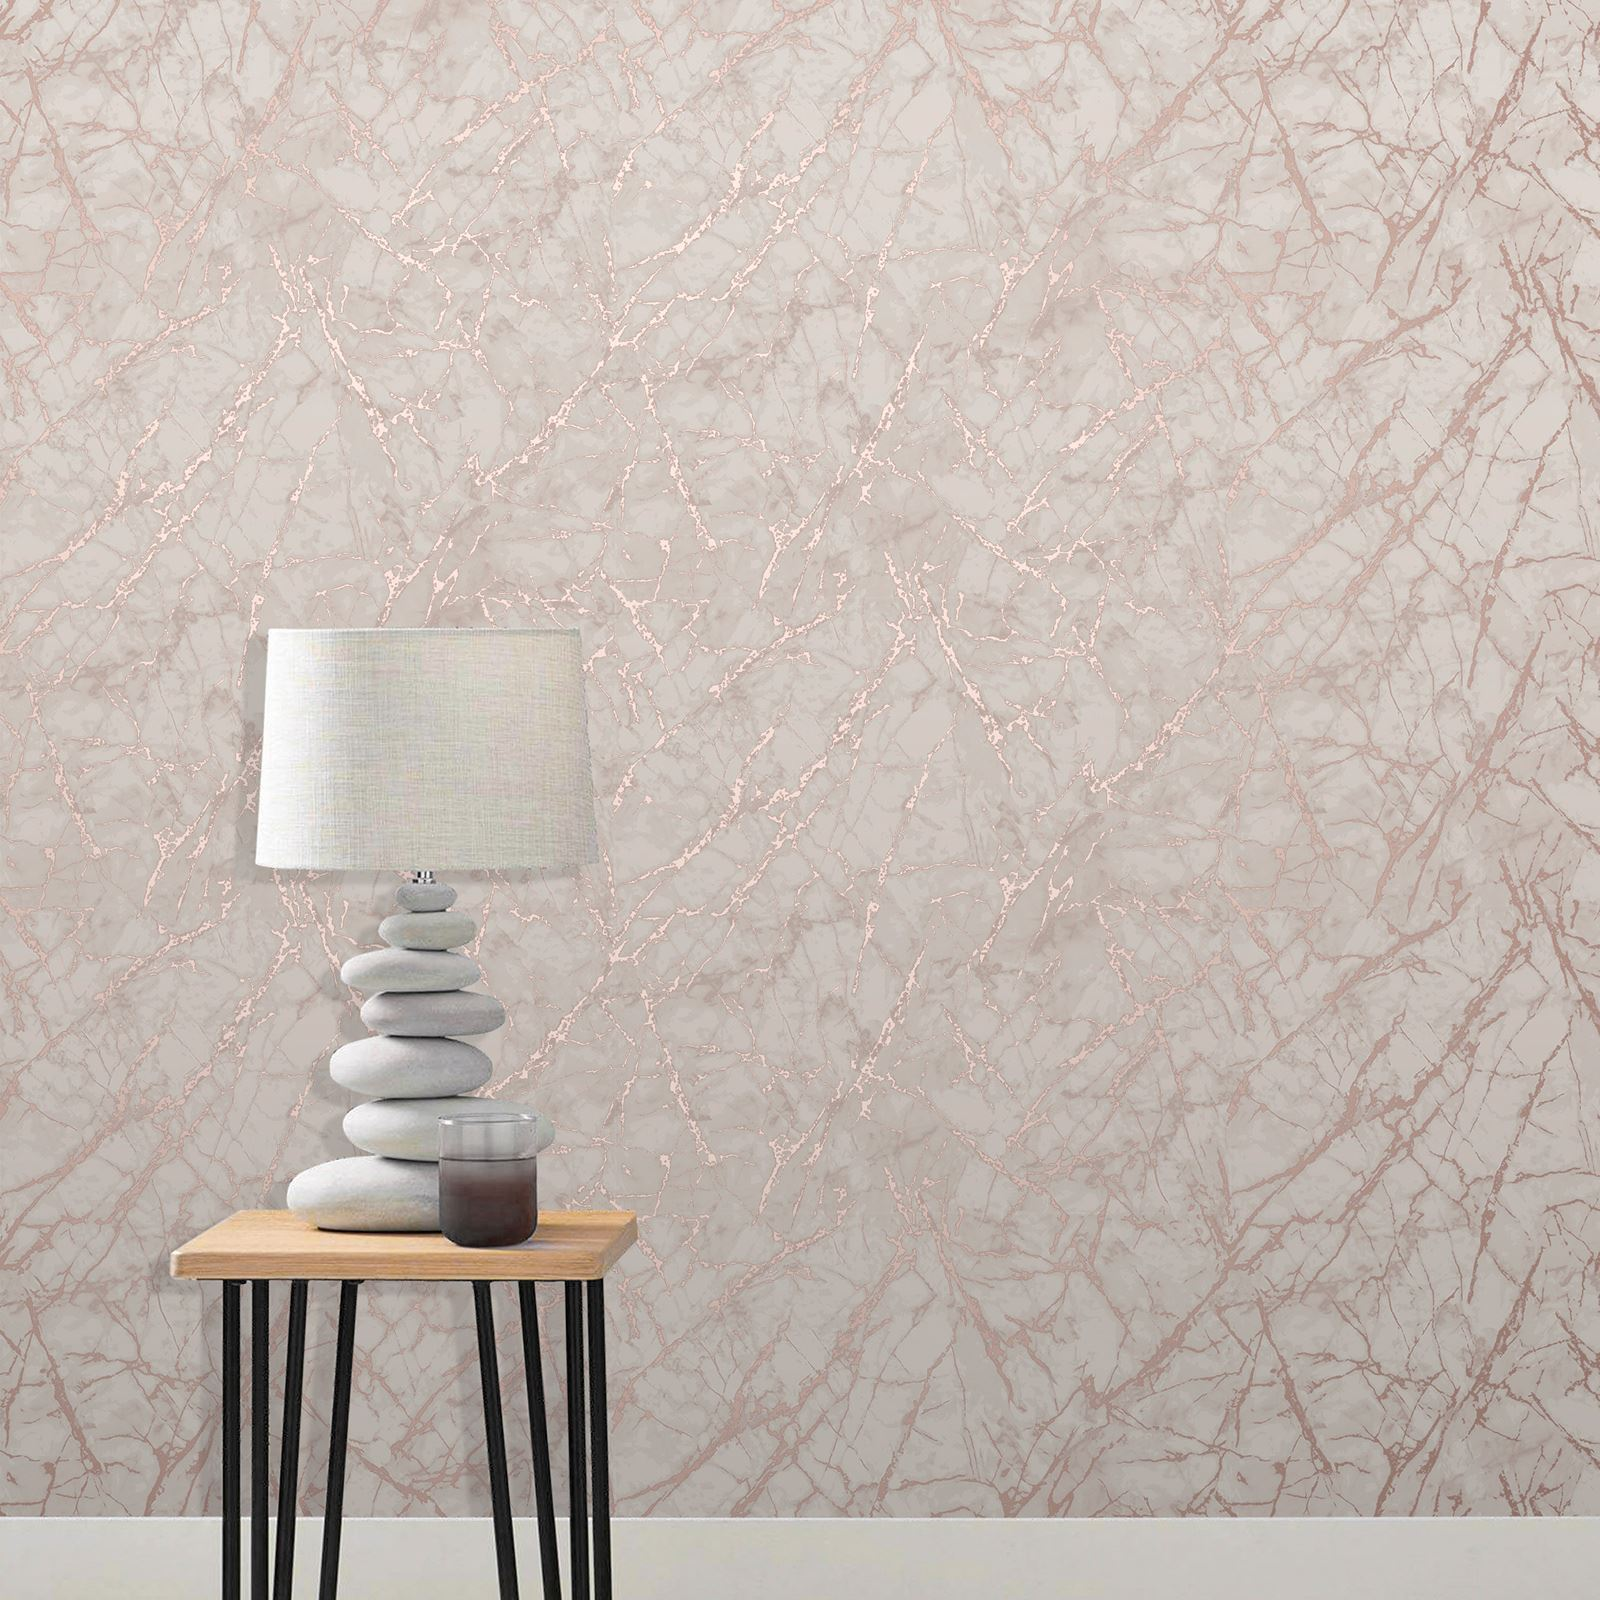 FINE-DECOR-METALLIC-GEOMETRIC-PLAIN-MARBLE-WALLPAPER-ROSE-GOLD-COPPER-SILVER thumbnail 18